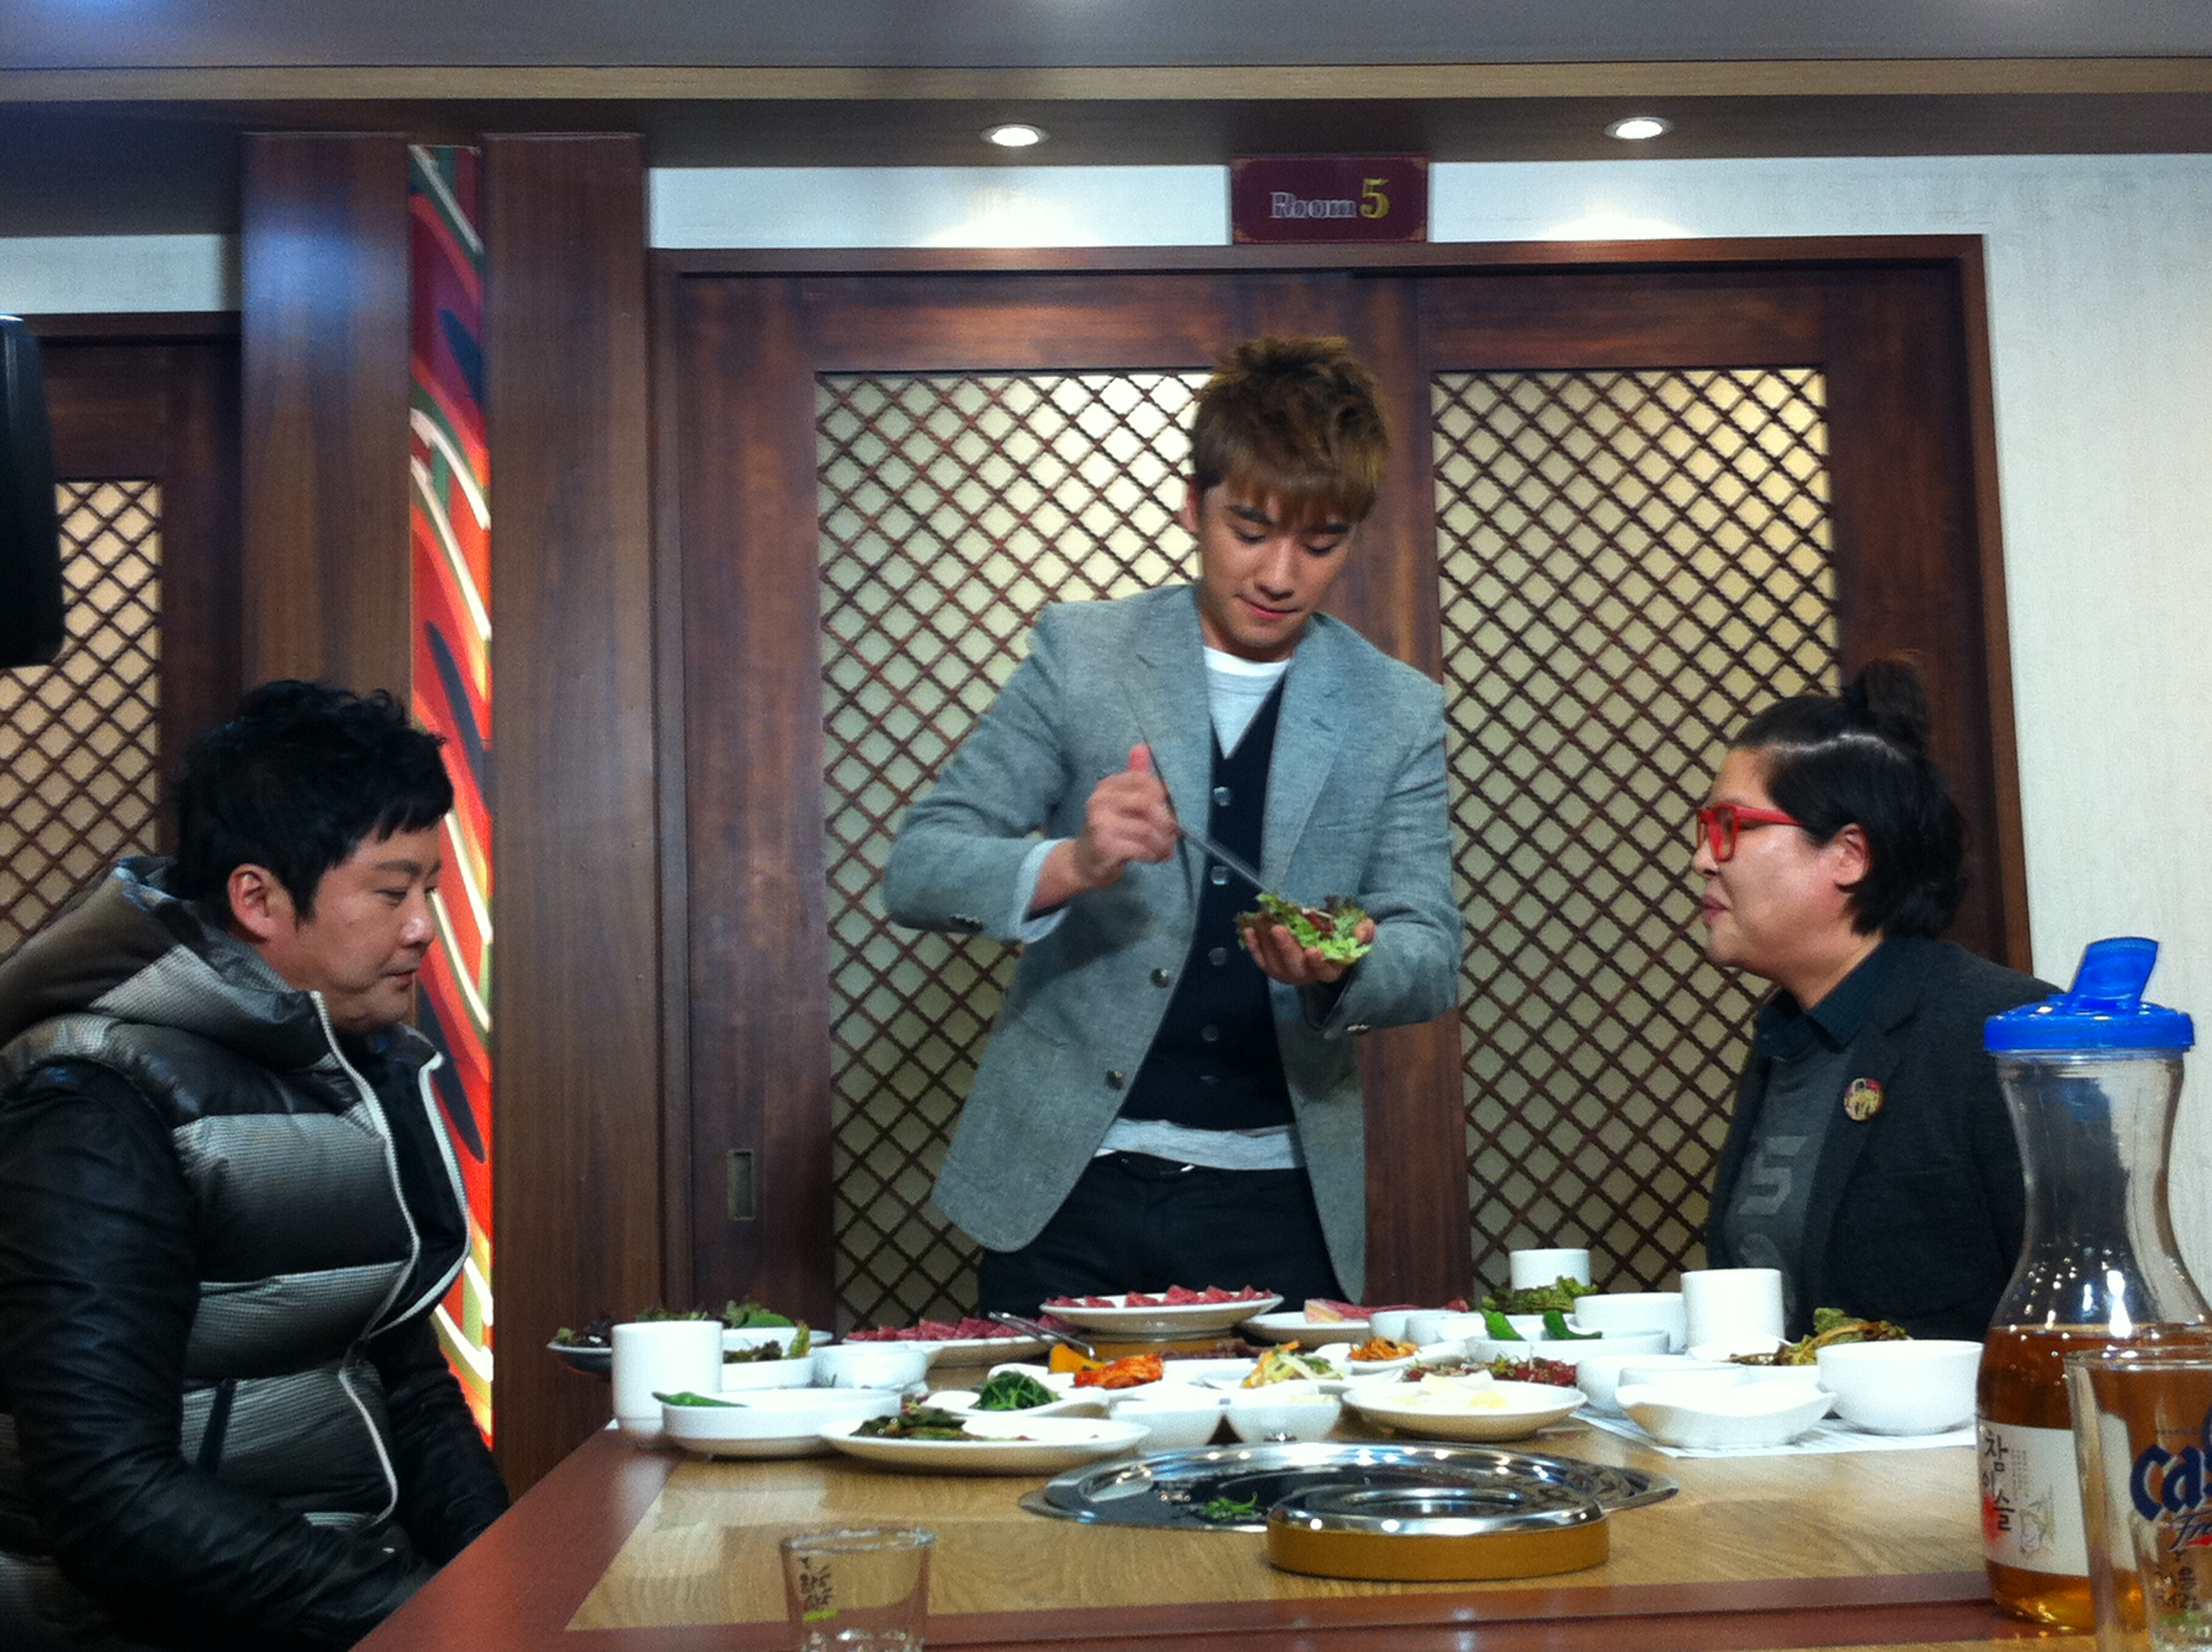 Seung Ri - tvN Taxi - Yeongcheon Younghwa Restaurant - 06feb2011 - 04.jpg